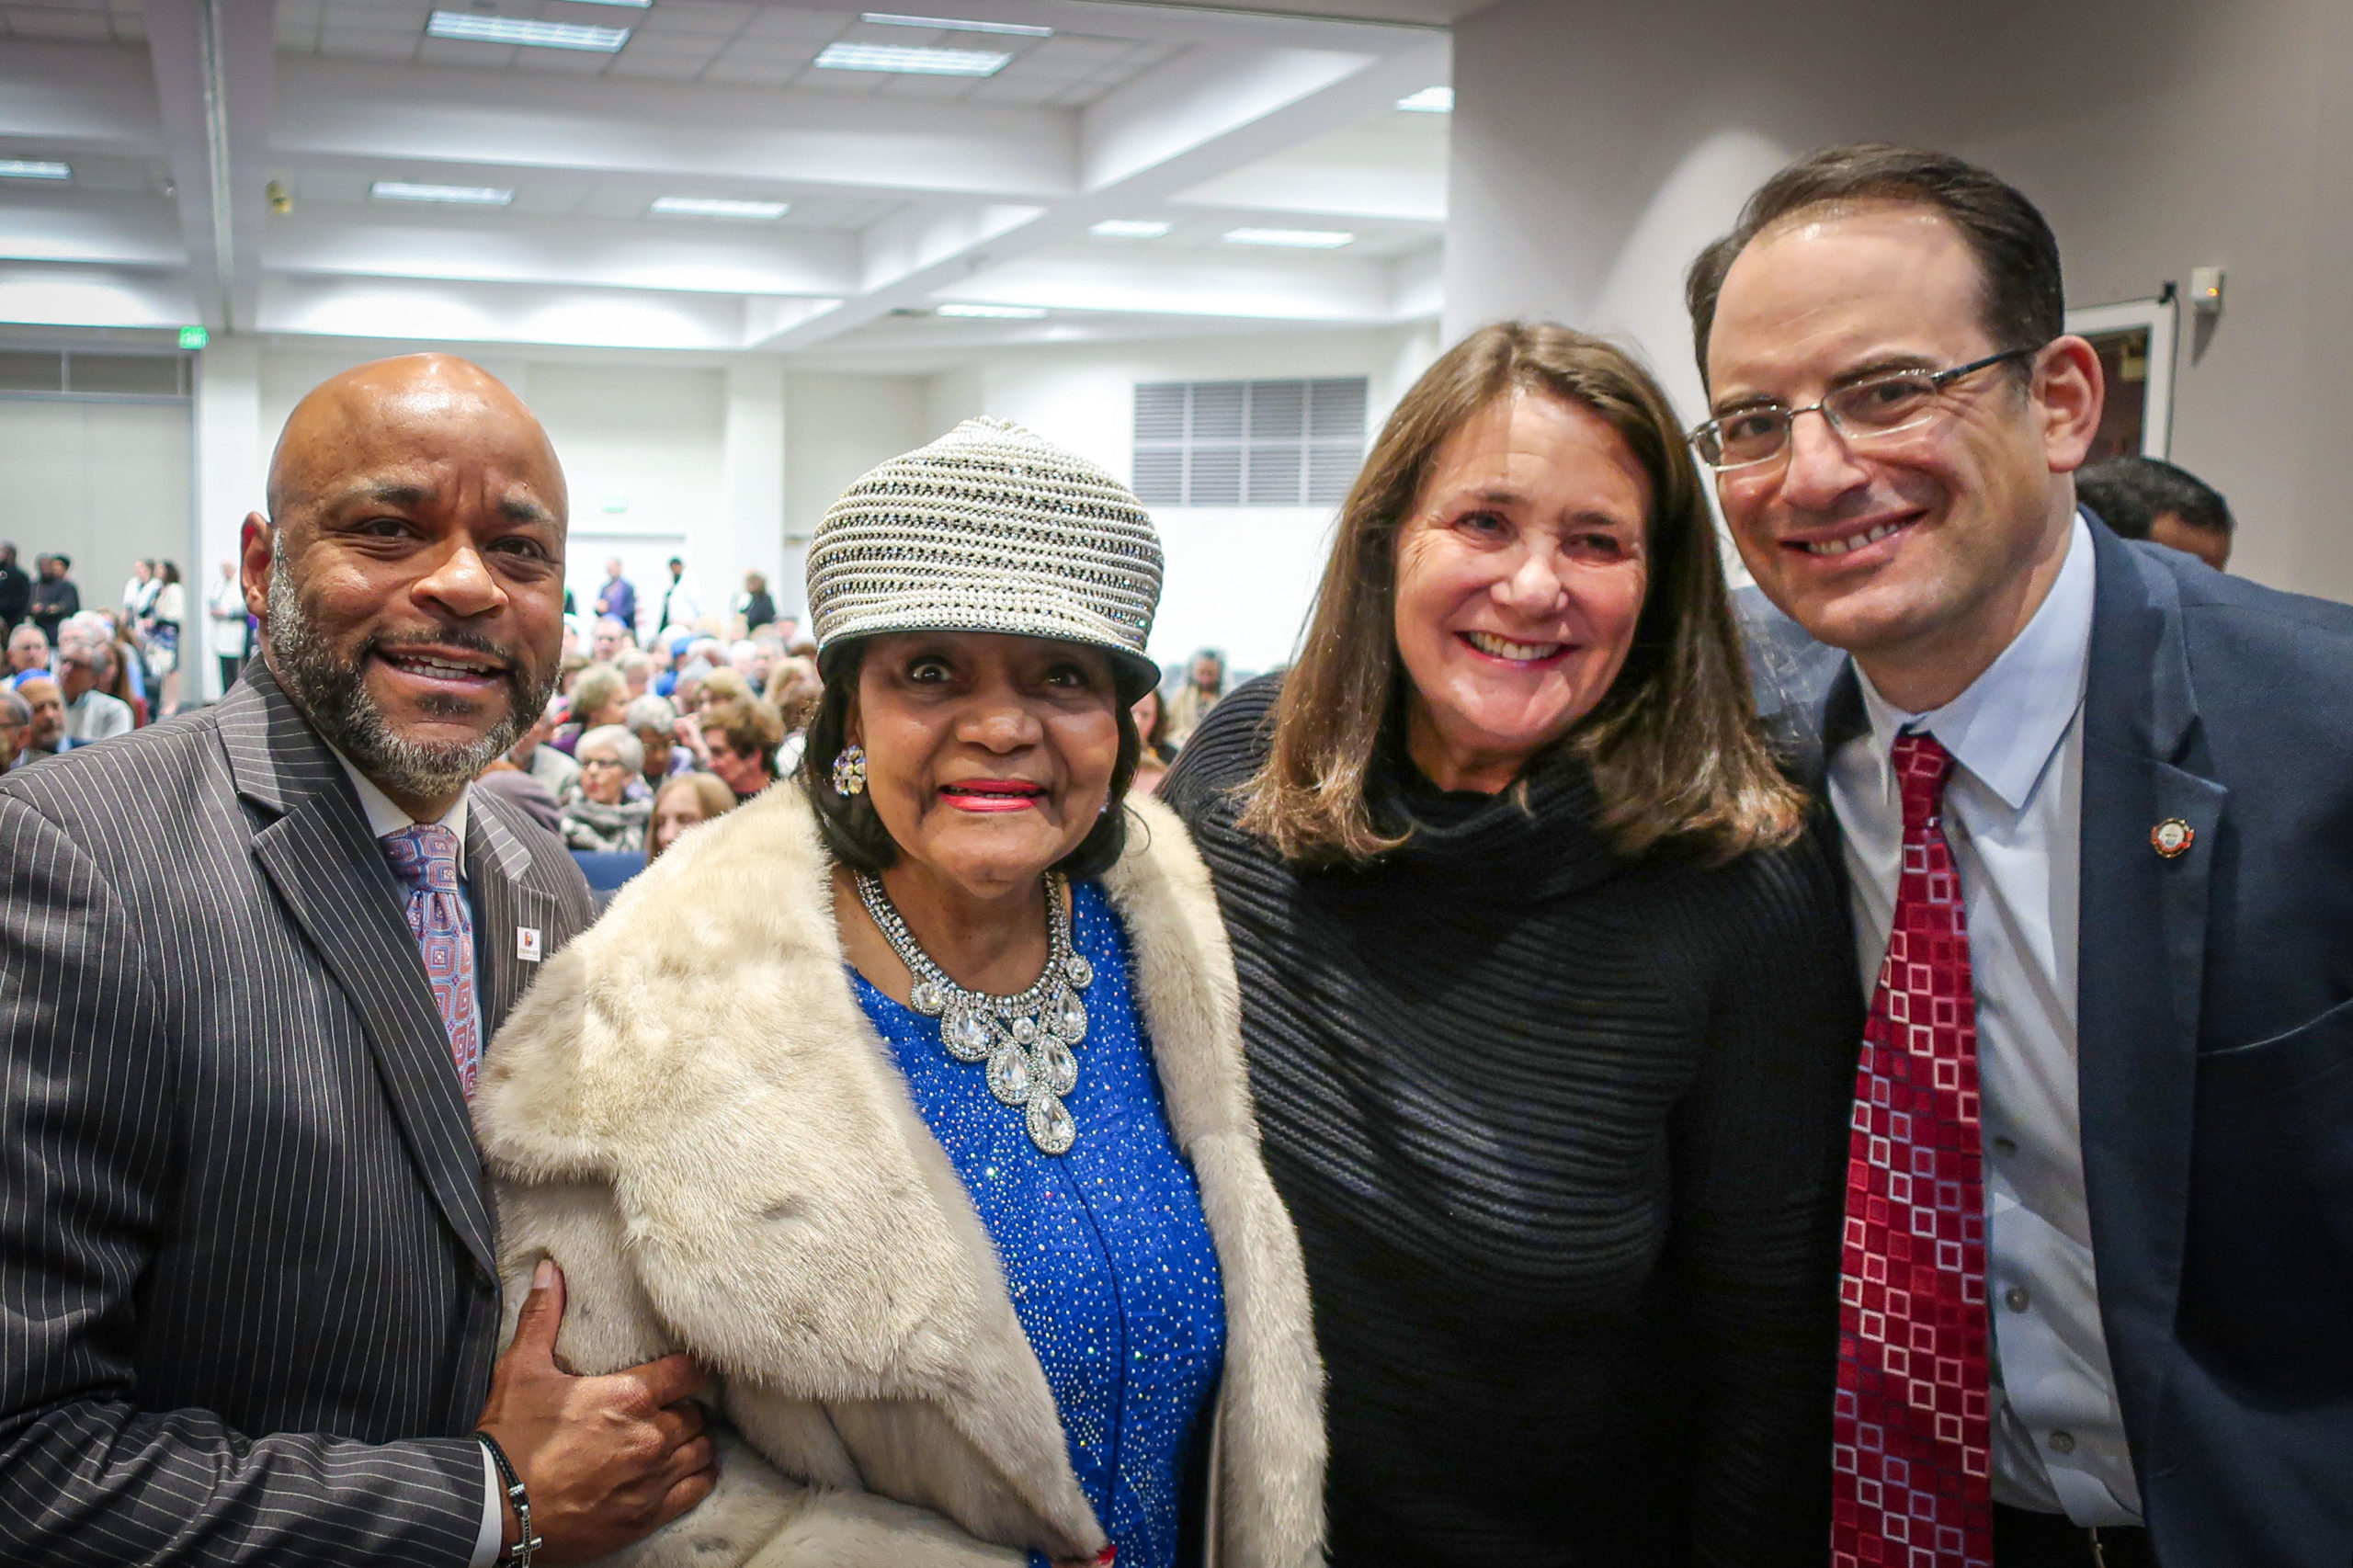 From left, Denver Mayor Michael Hancock, Syl Morgan Smith, Congresswoman Diana DeGette and Colorado Attorney General Phil Weiser were among those in attendance at a celebration of Dr. Martin Luther King Jr. at Temple Sinai in Denver on January 19, 2020.